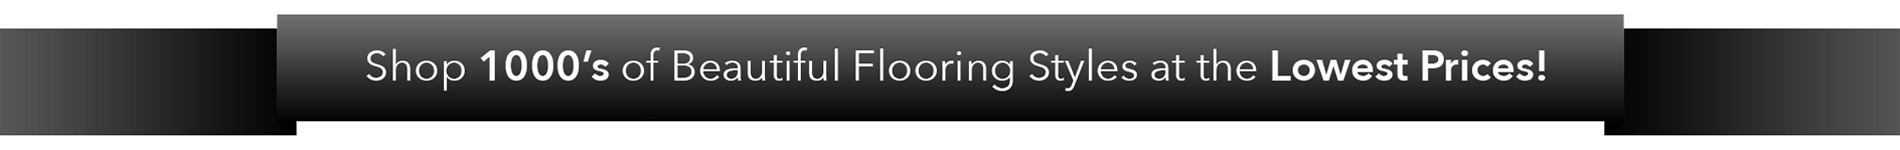 Shop 1000s of Beautiful Flooring Styles at the Lowest Prices!